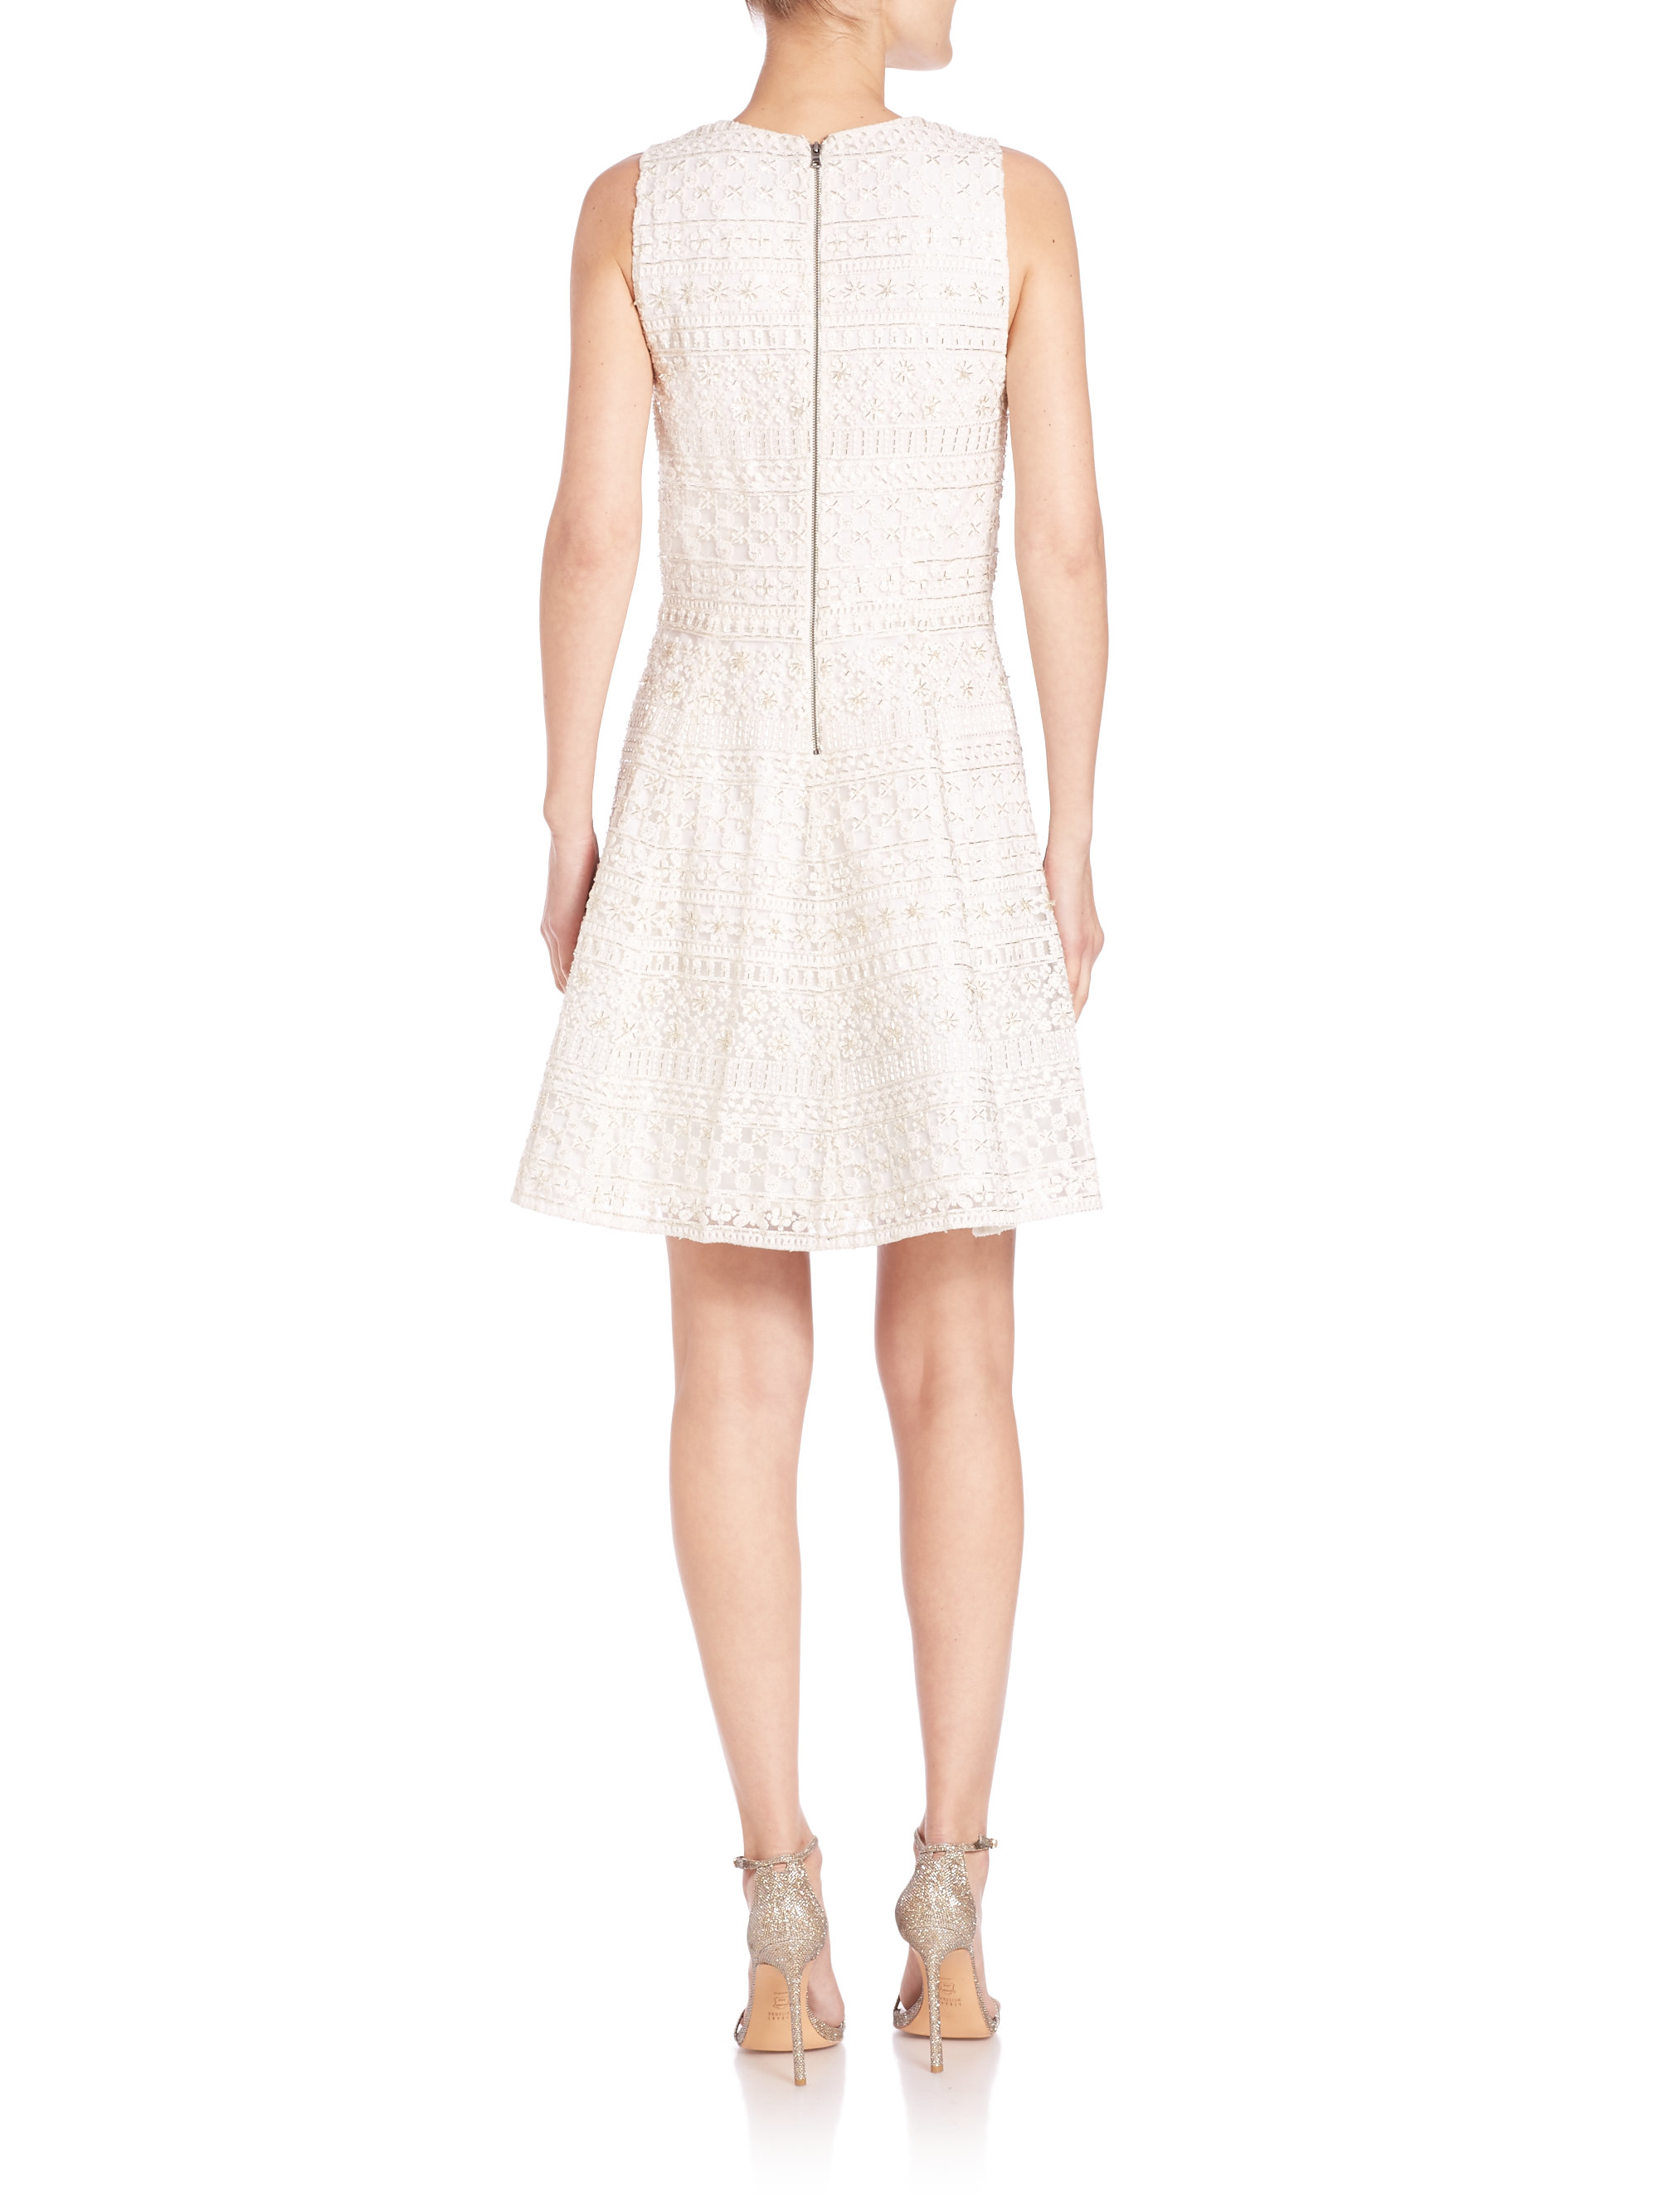 Alice olivia reba embroidered dress in white off